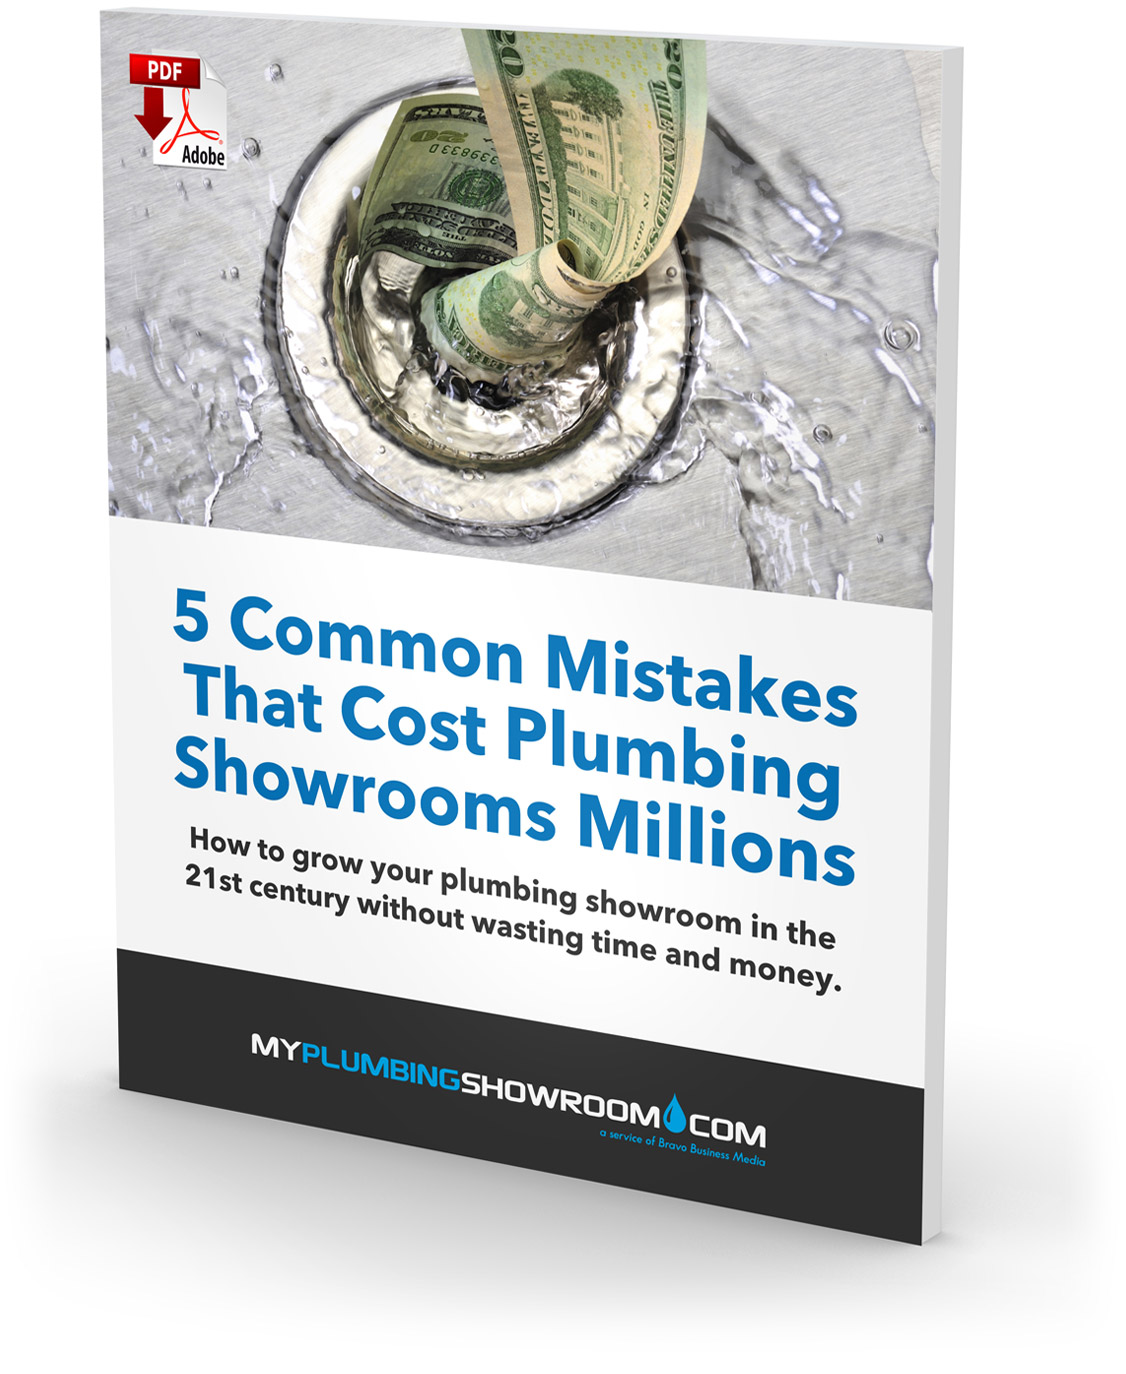 PDF Download: Is Your Plumbing Showroom Making These 7 Mistakes that Cost Millions?